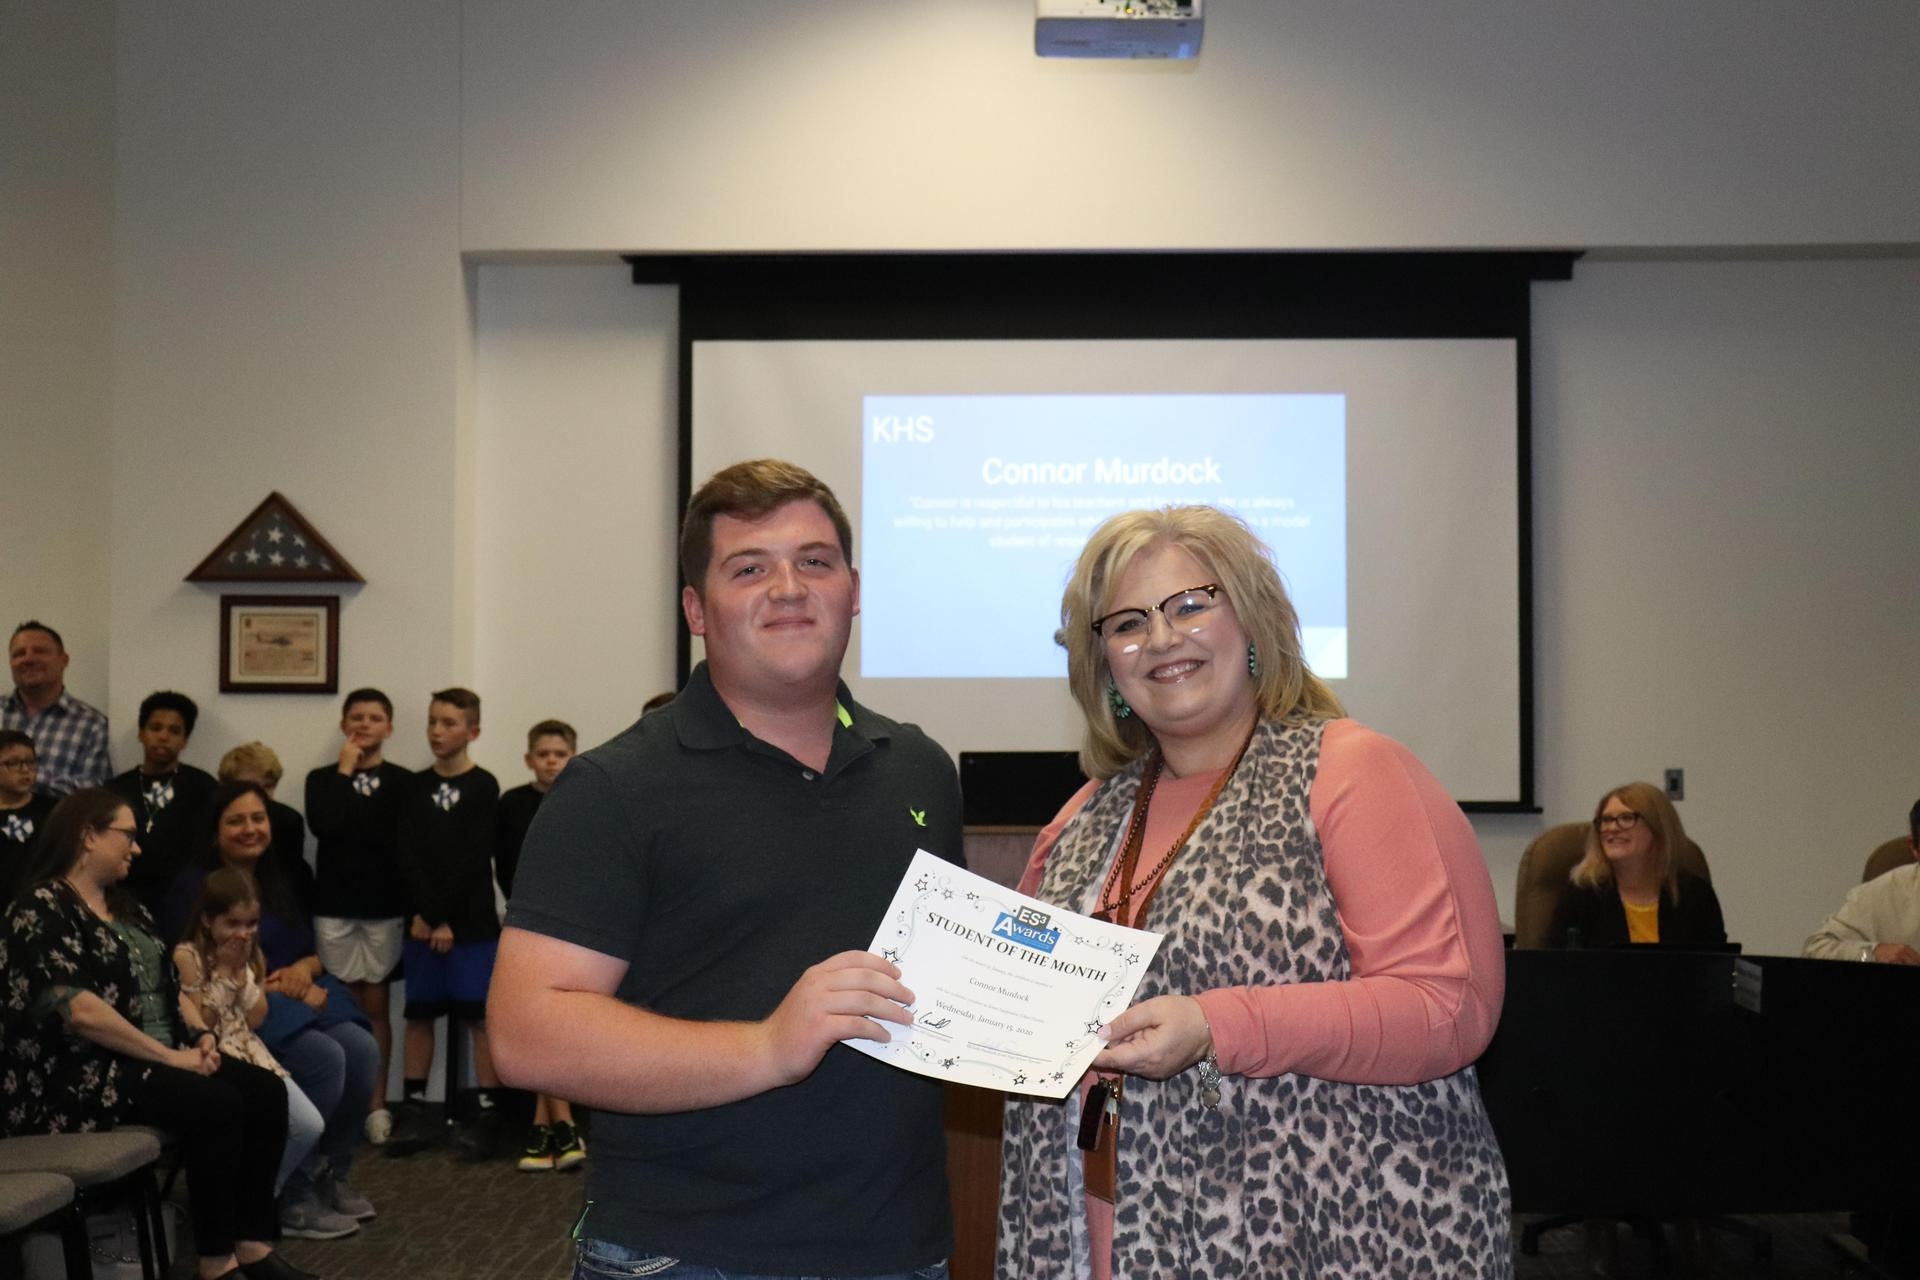 connor murdock and mrs p